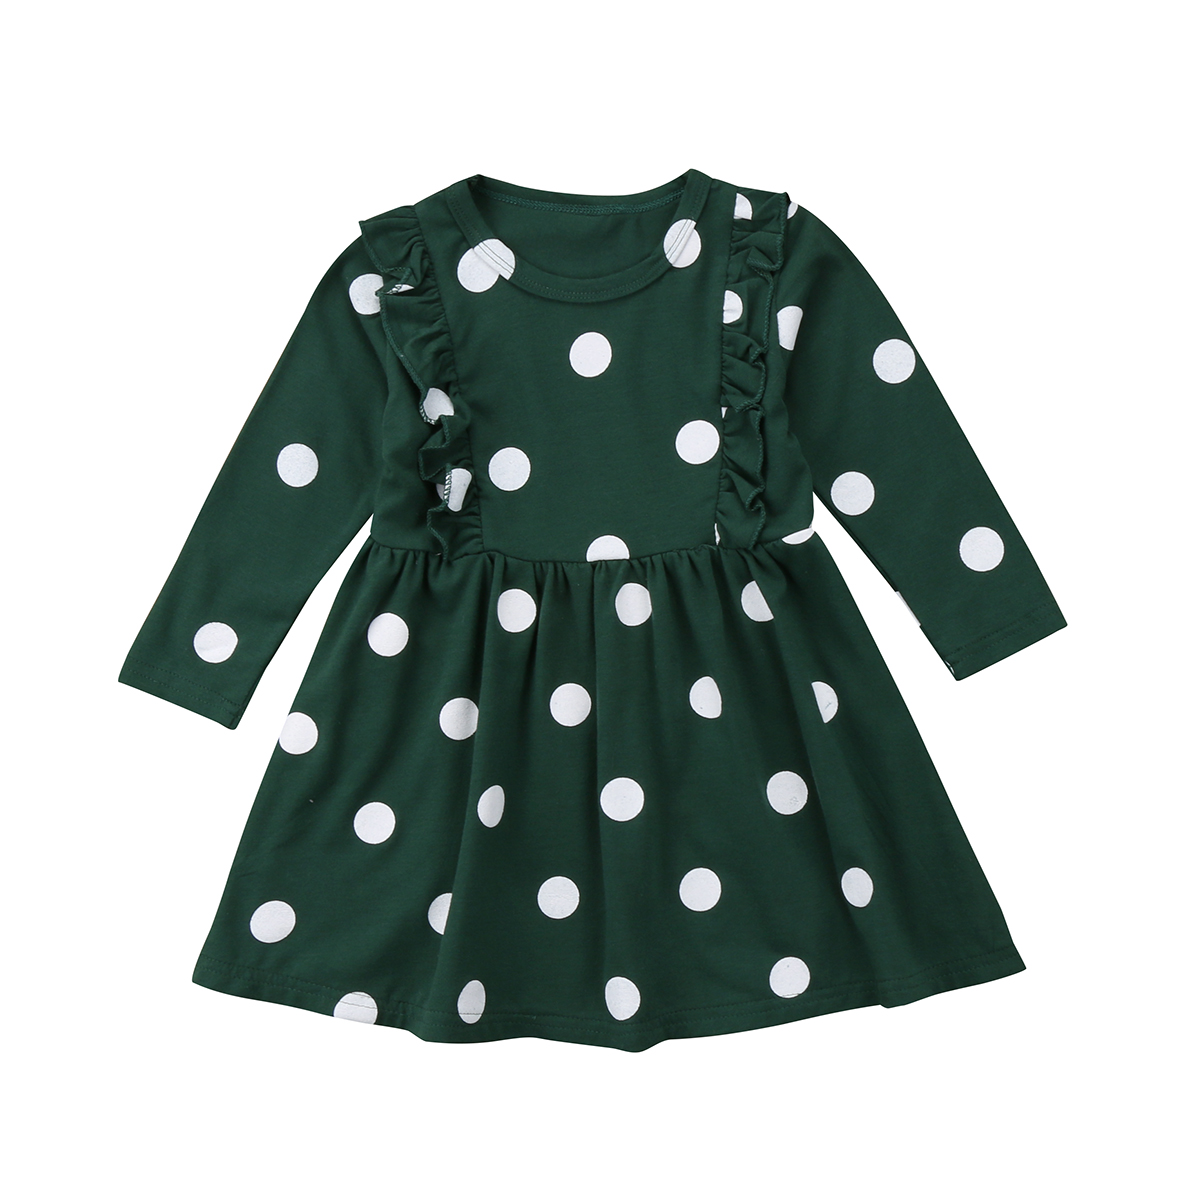 Girls Dress 2018 Brand Dot Printing Princess Dress Spring Style Long Sleeve Dress for Children Clothes plaid long sleeve belted midi dress